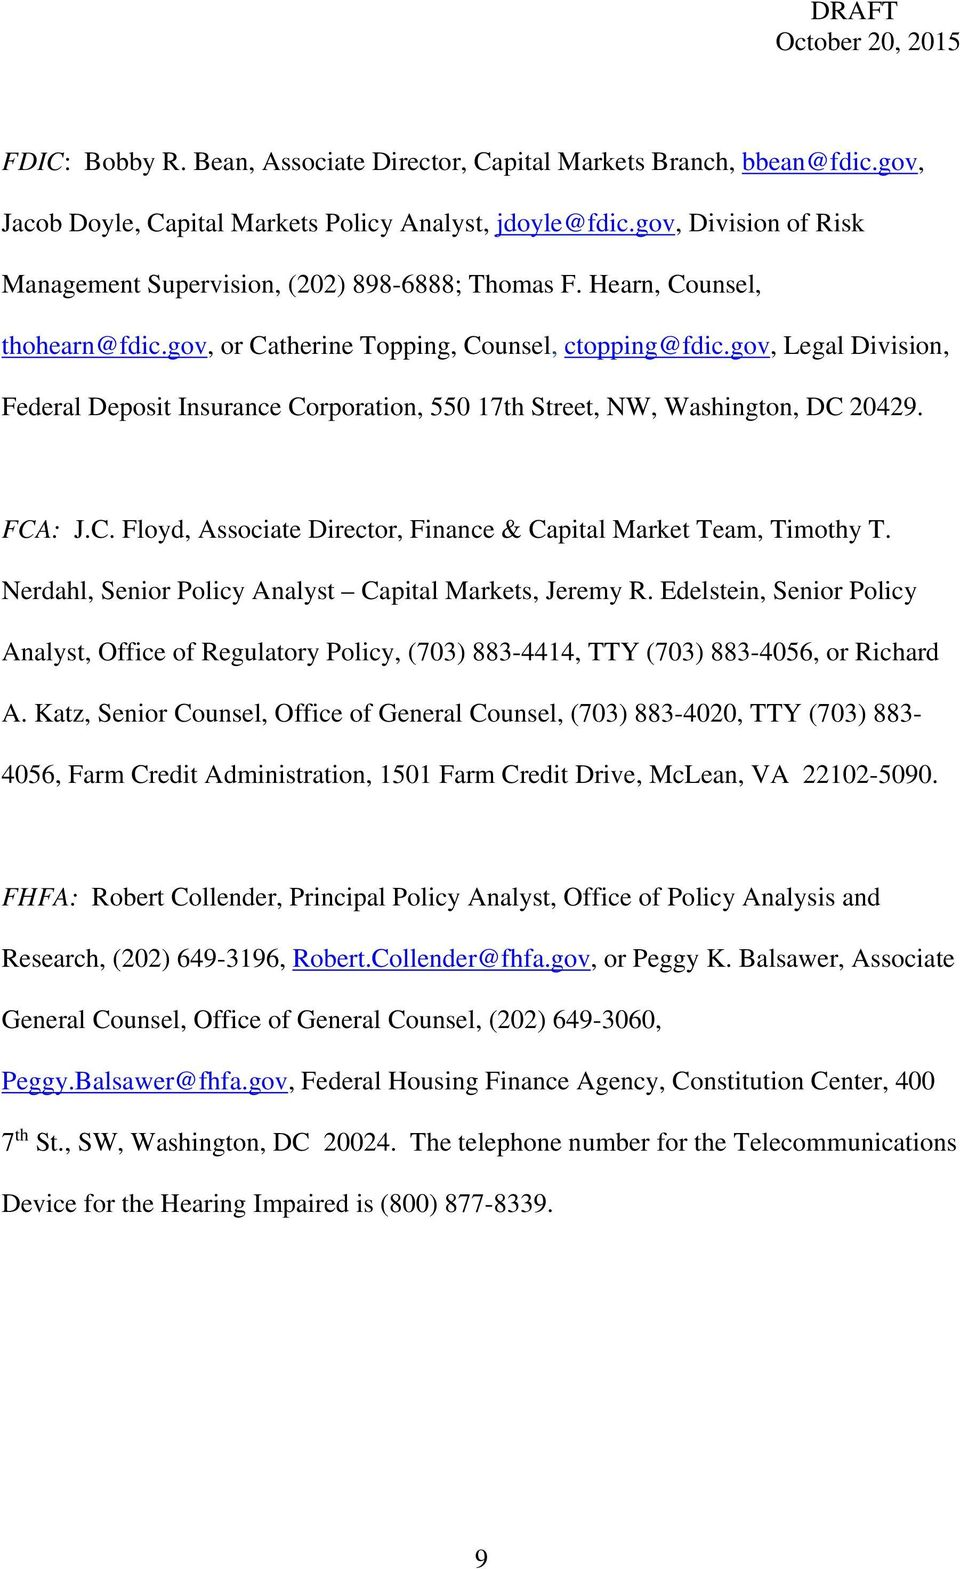 gov, Legal Division, Federal Deposit Insurance Corporation, 550 17th Street, NW, Washington, DC 20429. FCA: J.C. Floyd, Associate Director, Finance & Capital Market Team, Timothy T.